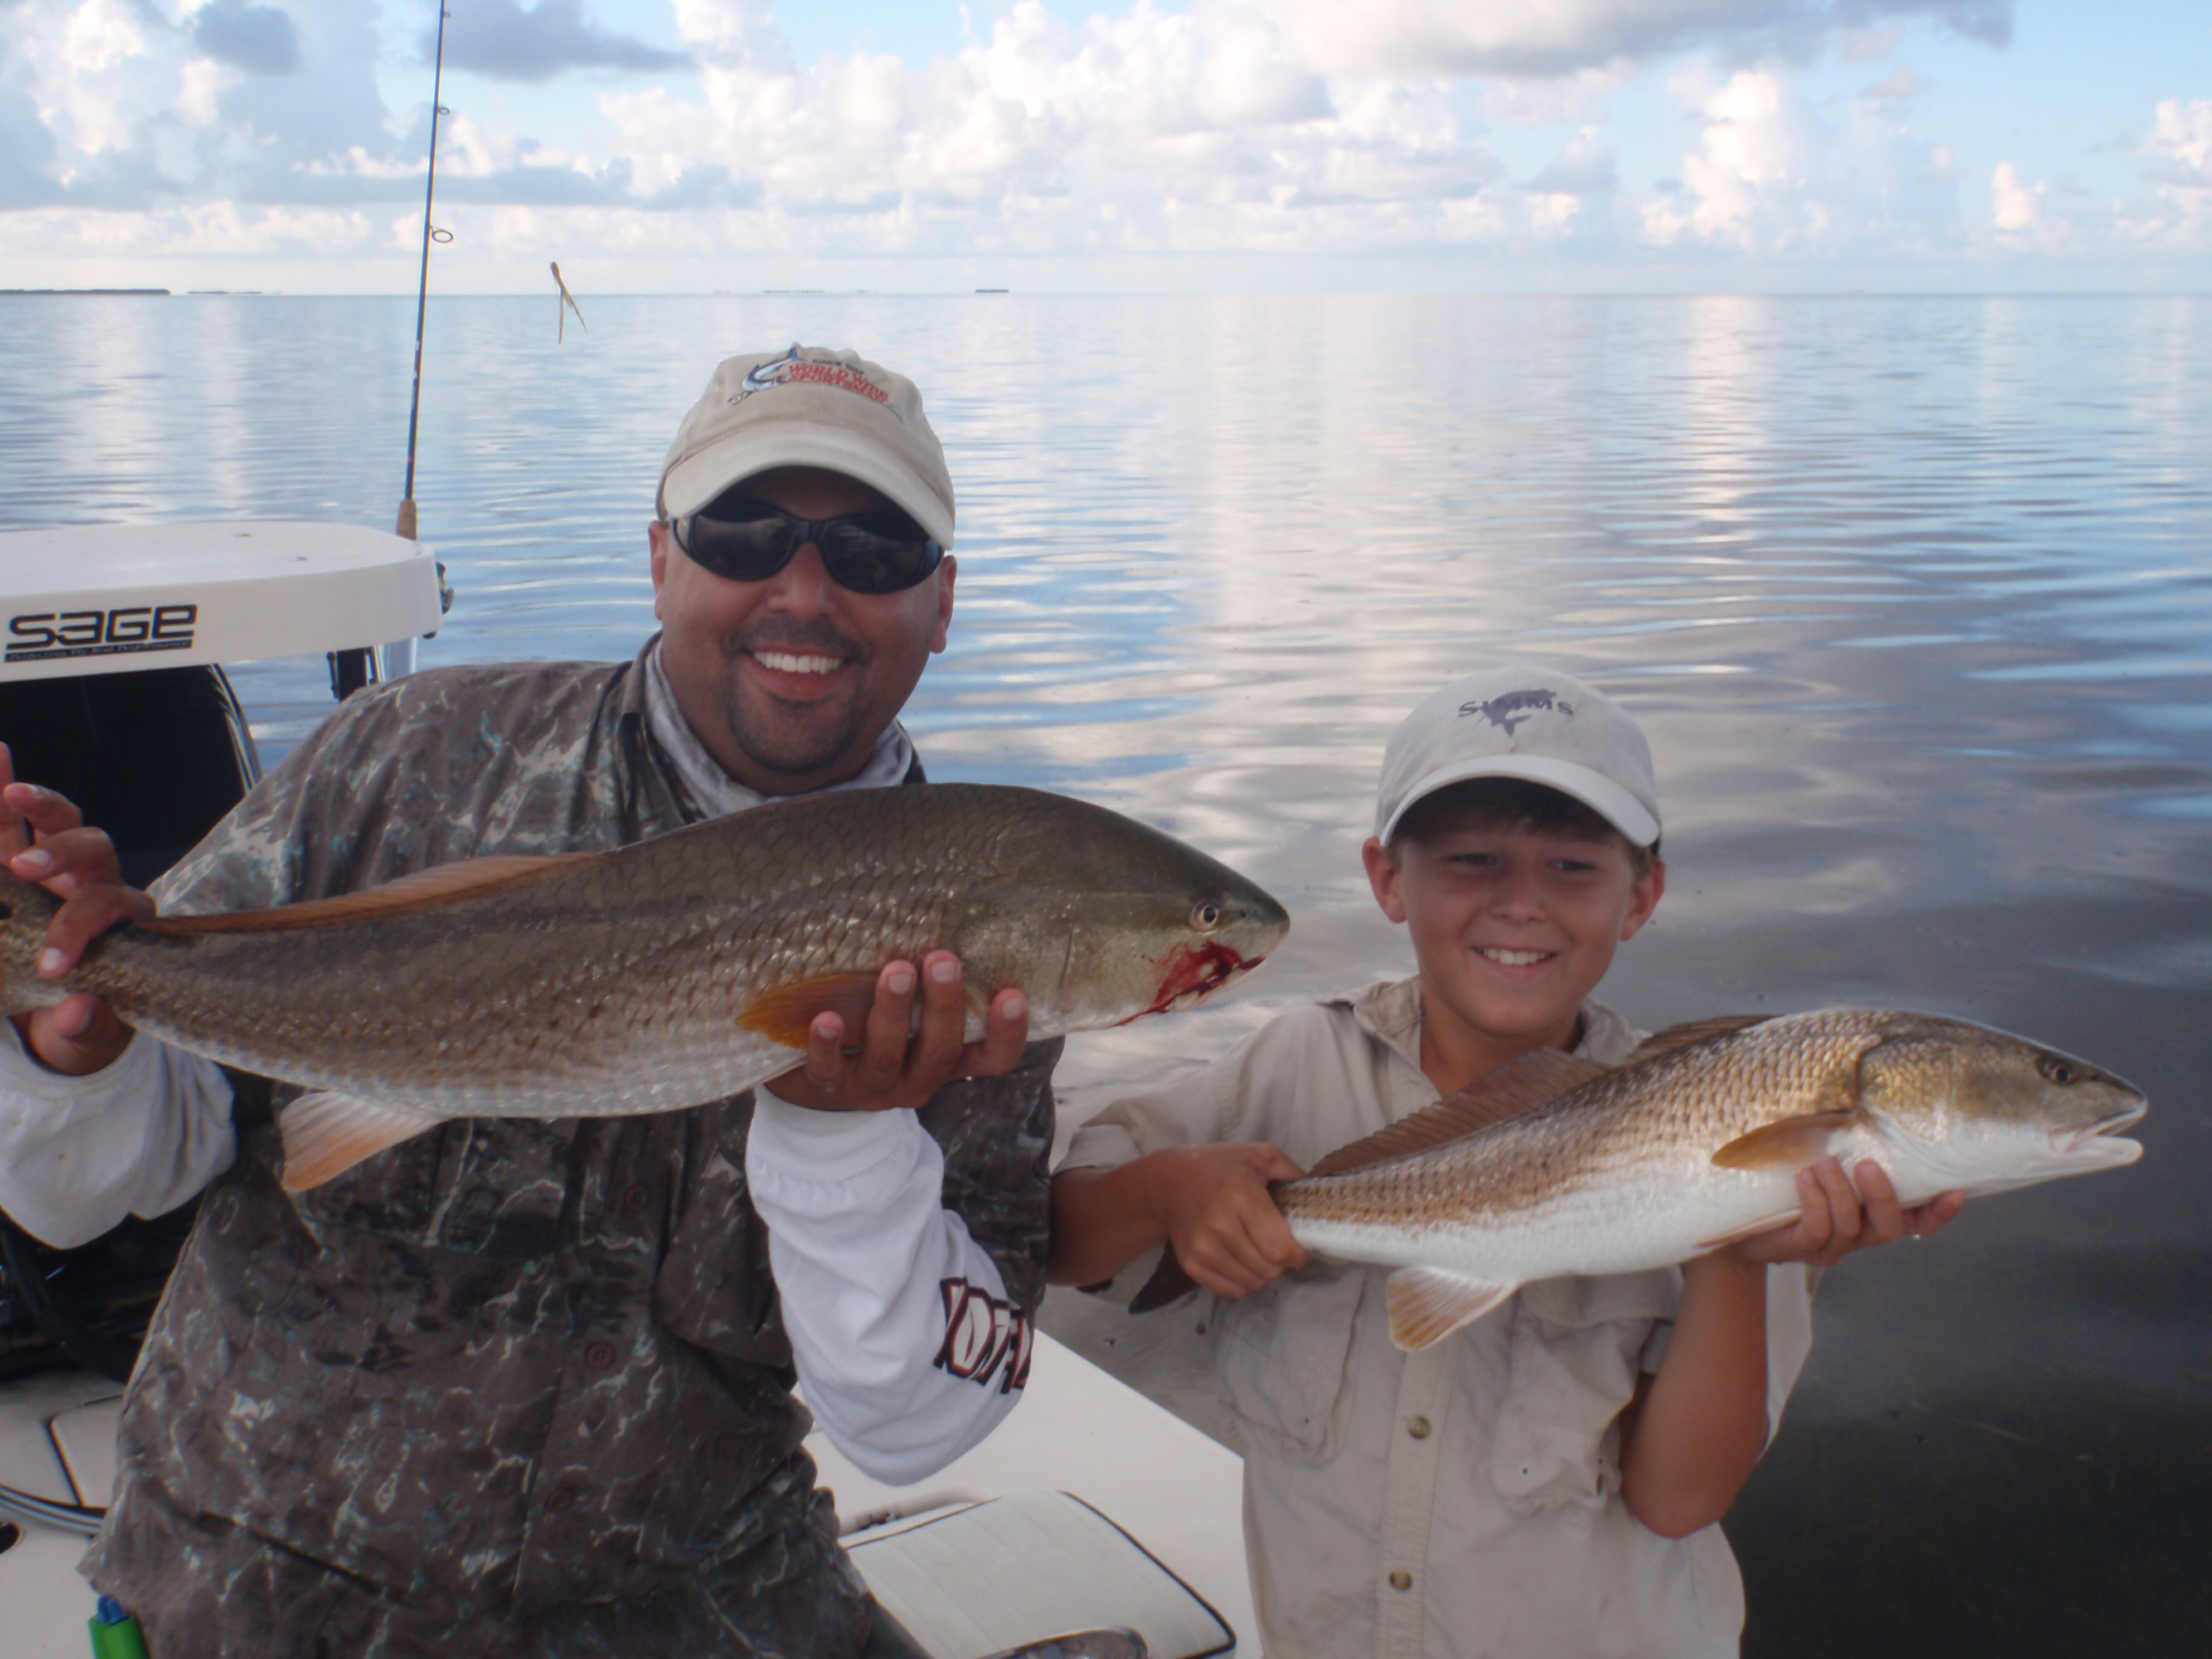 Boat charters in clearwater fl photo gallery for Fishing charters clearwater